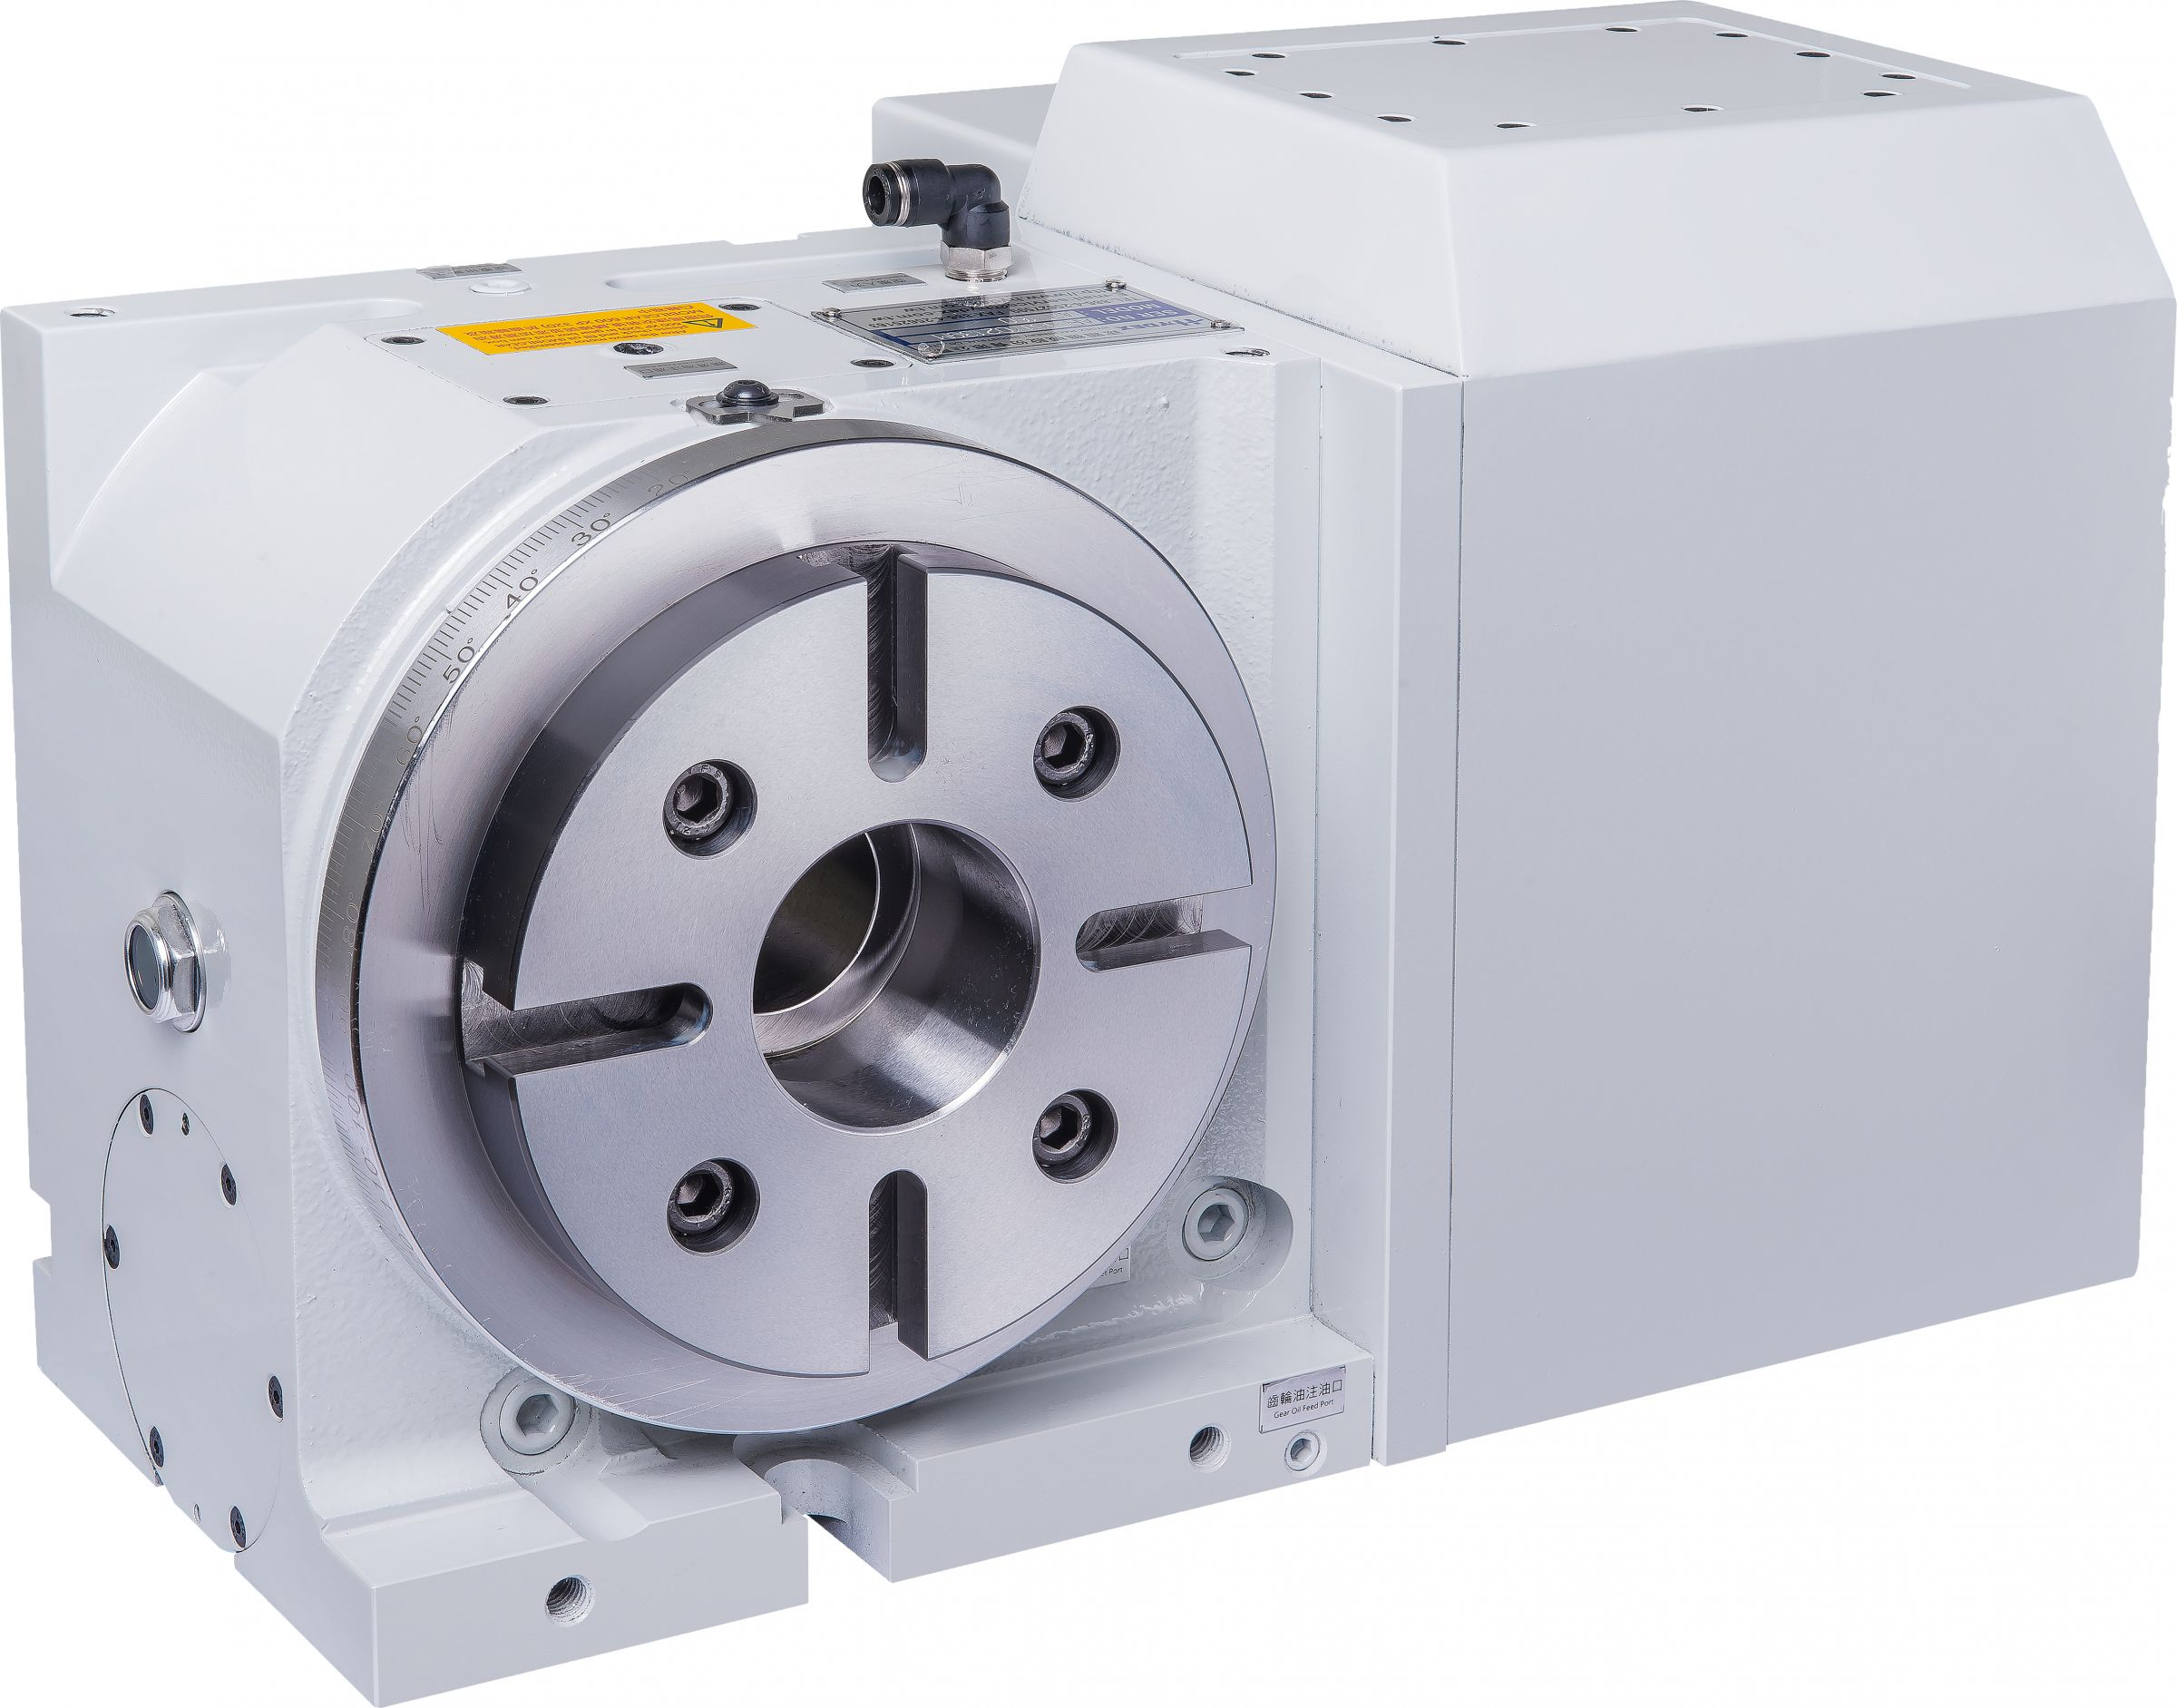 Rotary Table,The 4th axis,Rotary axis